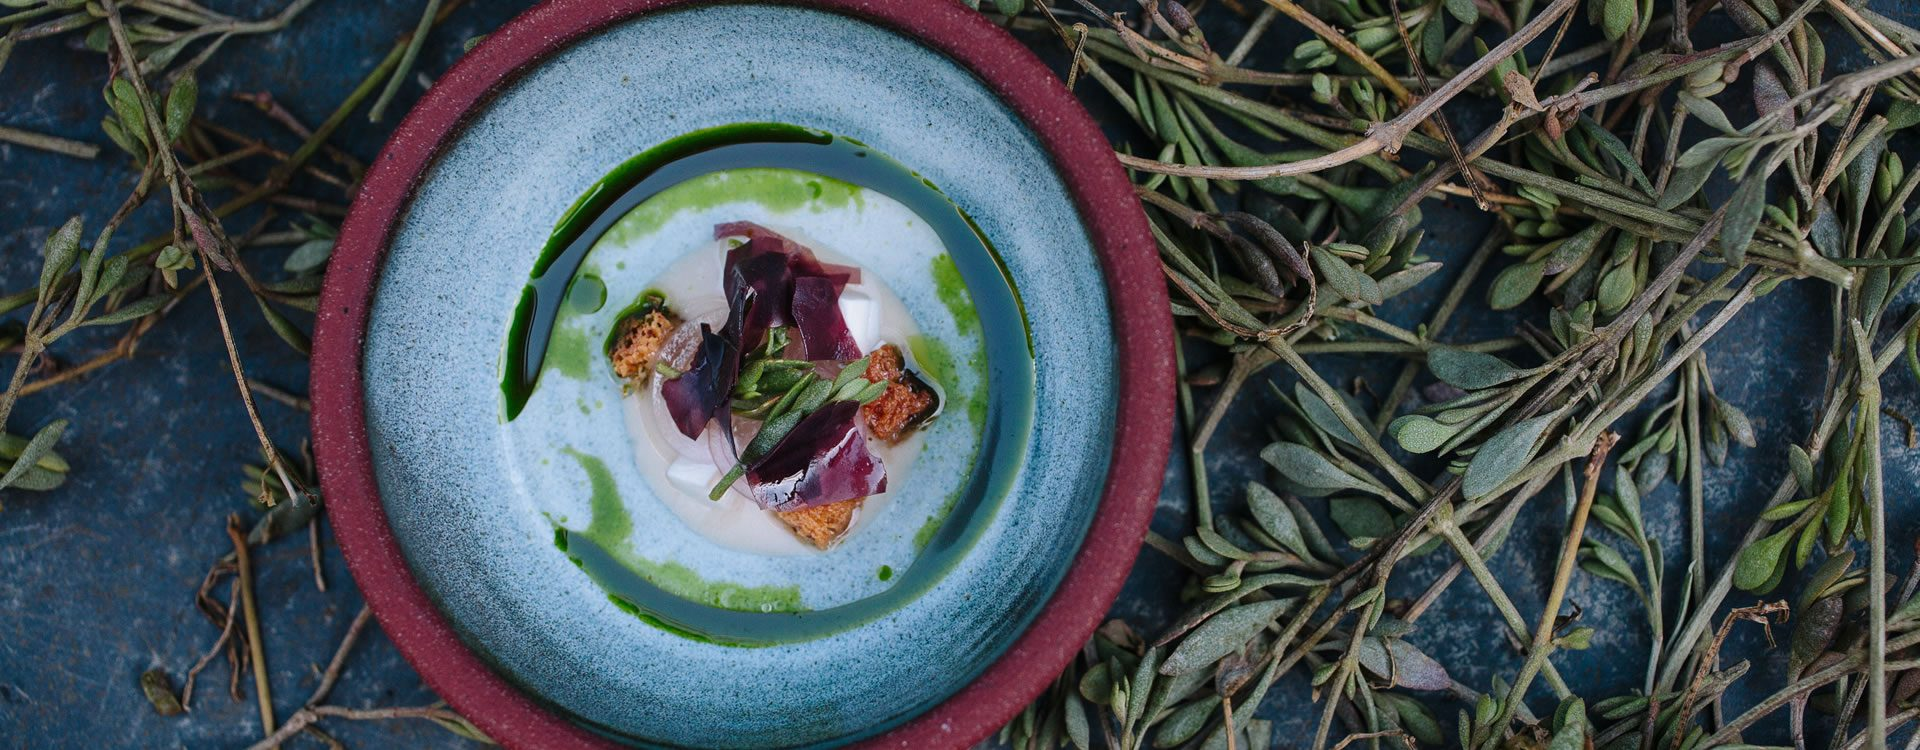 Michelin Star Restaurants in Wales 2020 - Ynyshir